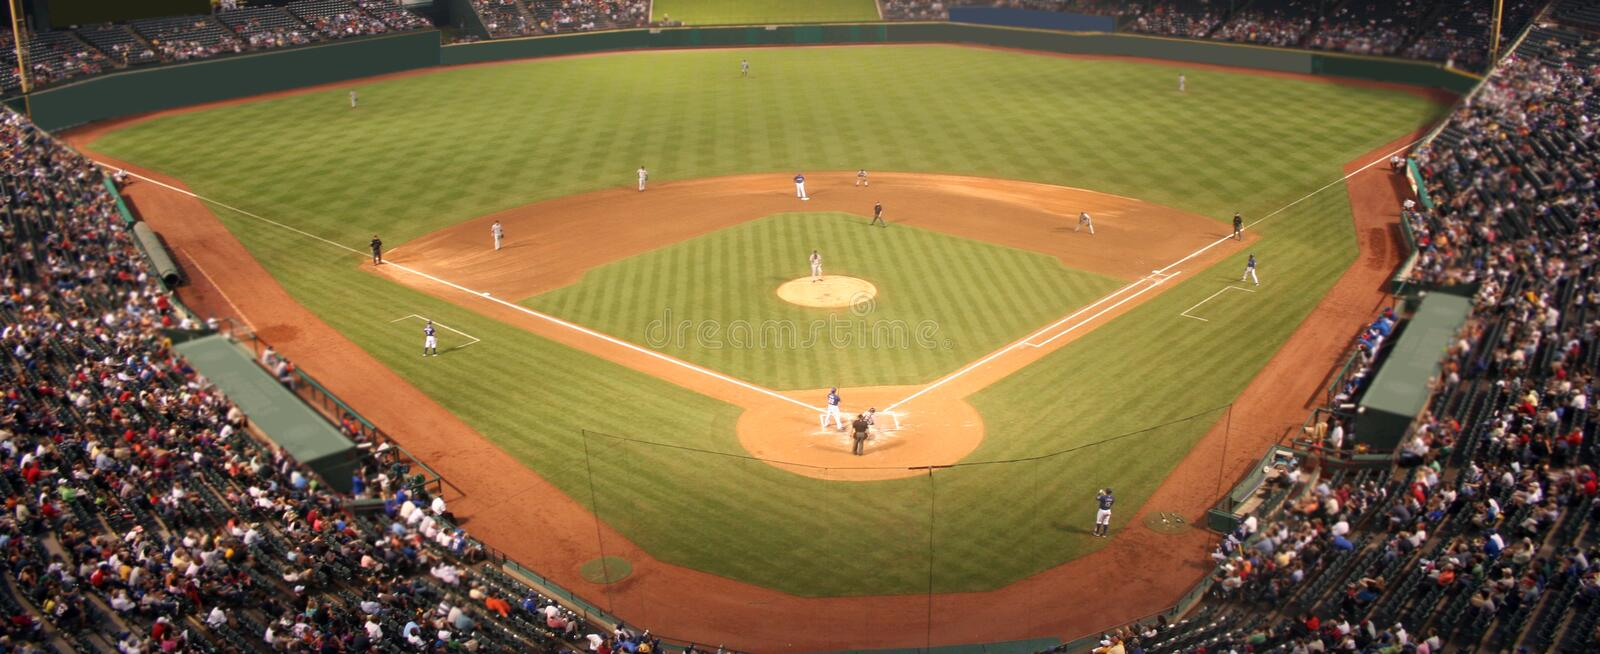 Download Baseball Field stock photo. Image of night, people, compete - 6146612